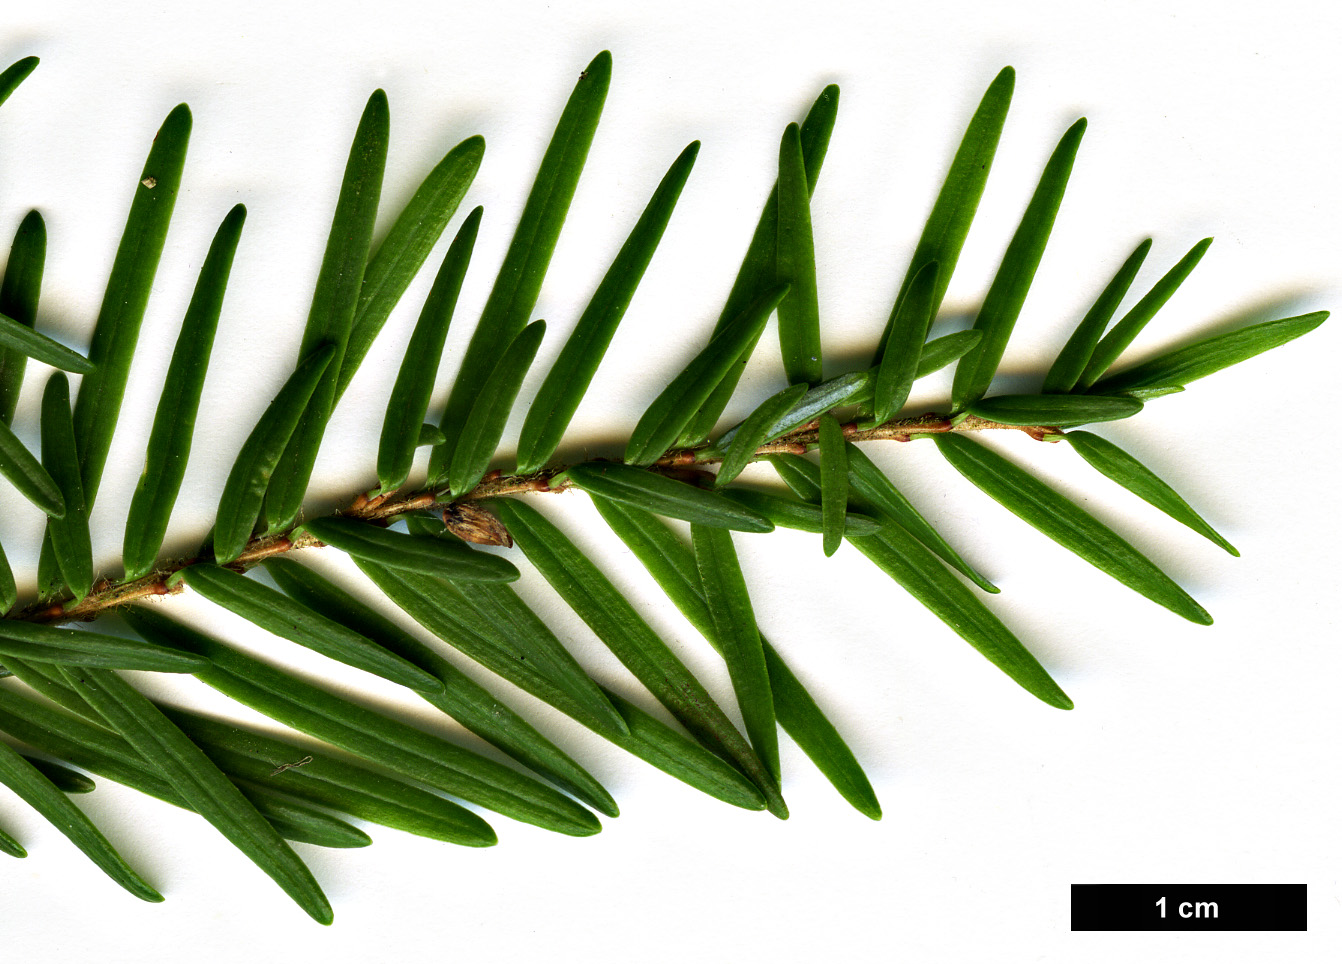 High resolution image: Family: Pinaceae - Genus: Tsuga - Taxon: heterophylla